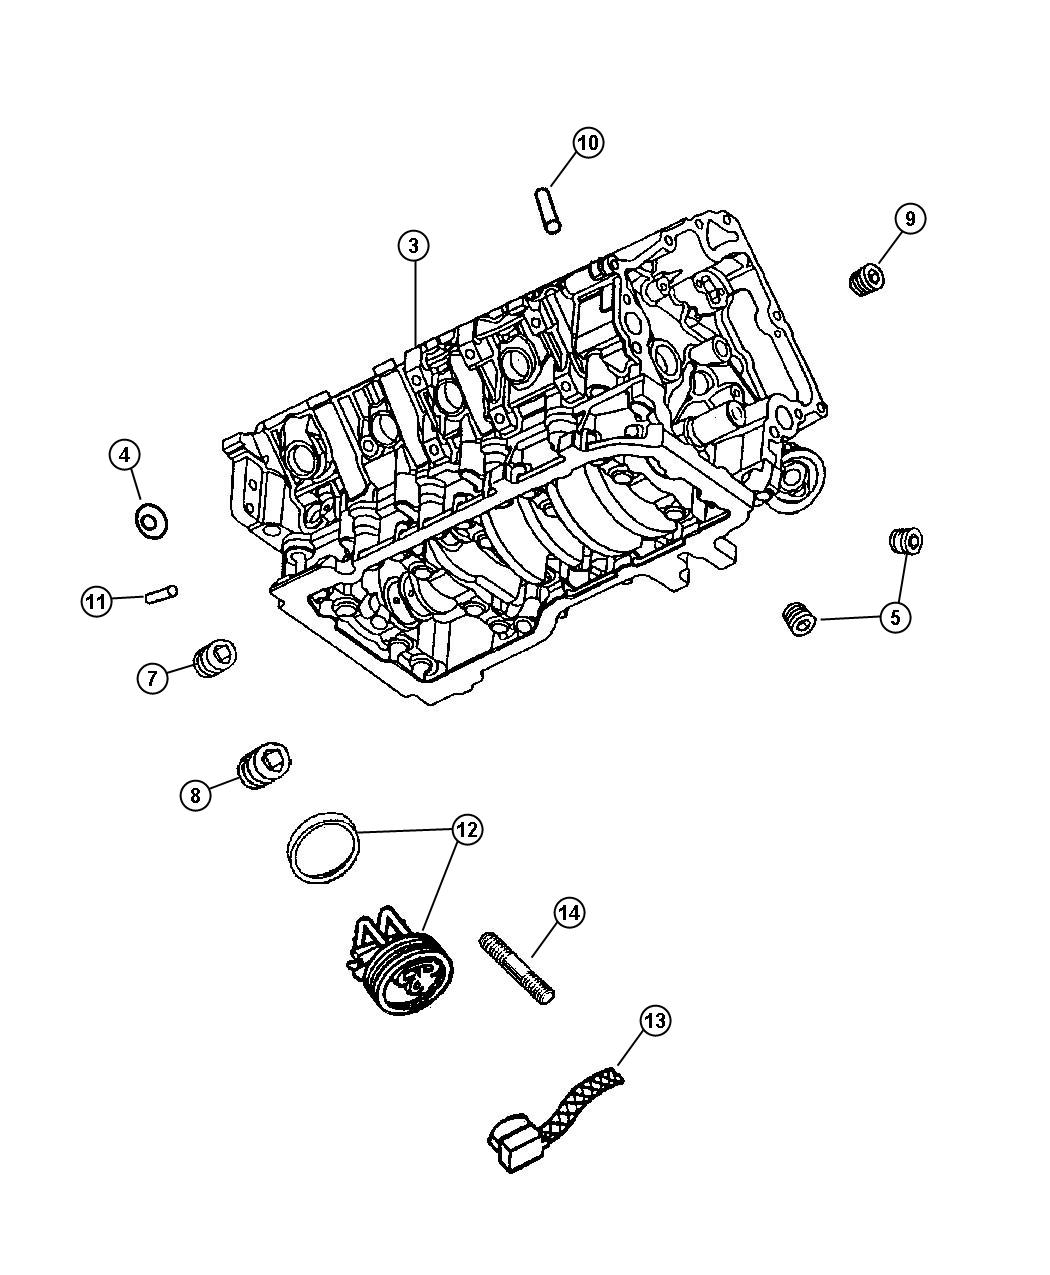 00i94535  L Hemi Engine Gasket Diagram on jeep grand cherokee, jeep cherokee, performance parts, engine pulley part number, engine pulley schematic, v8 horsepower, intake manifold upgrade,